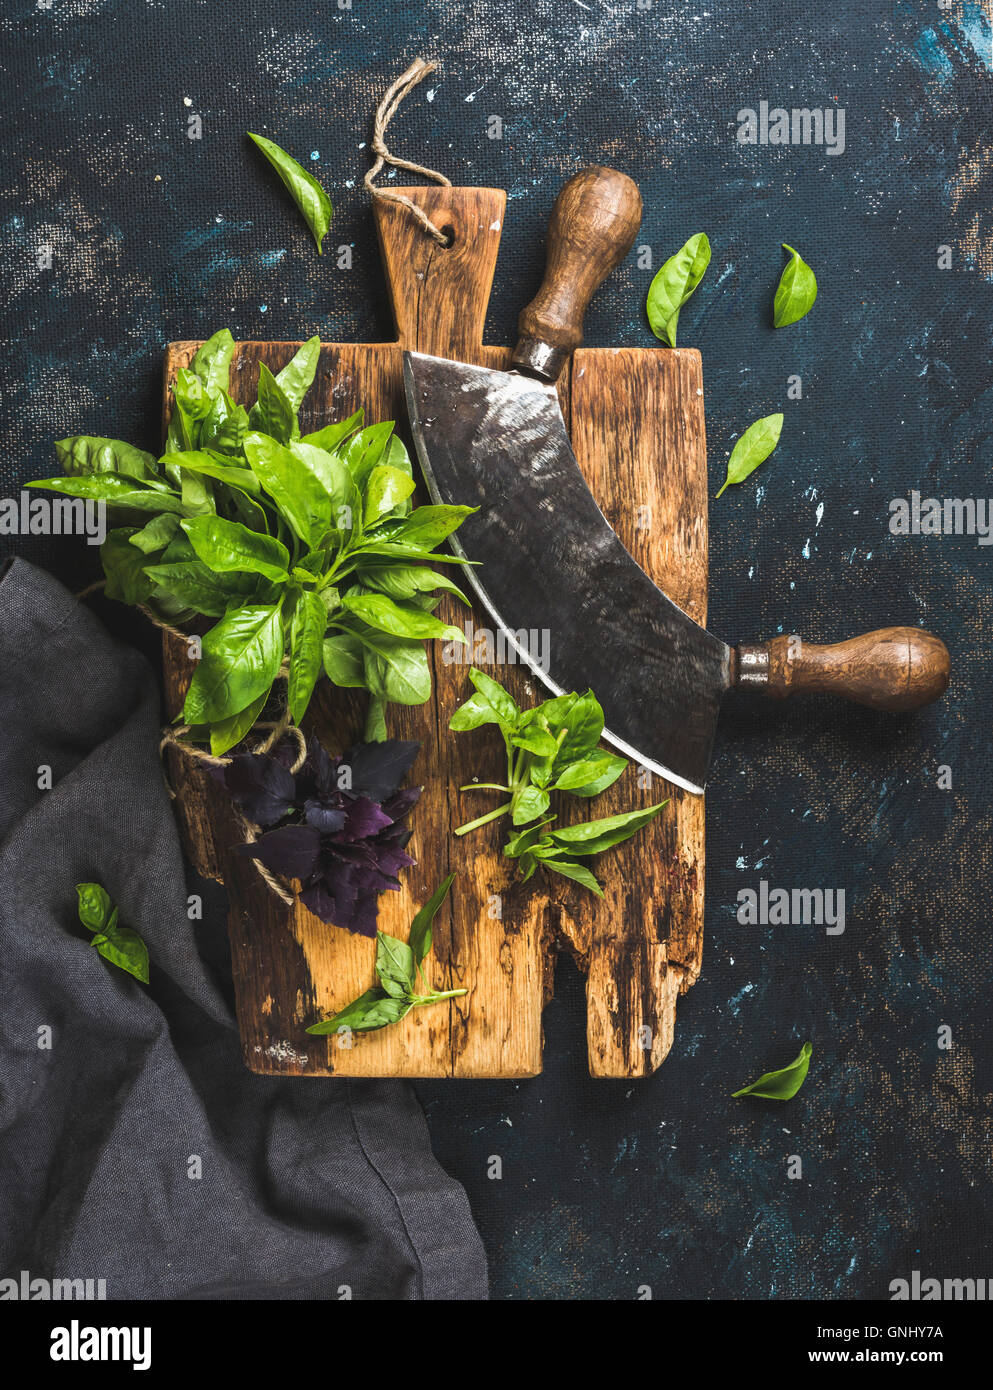 Fresh green and purple basil leaves with herb chopper knife on rustic cutting board over grunge dark blue plywood - Stock Image